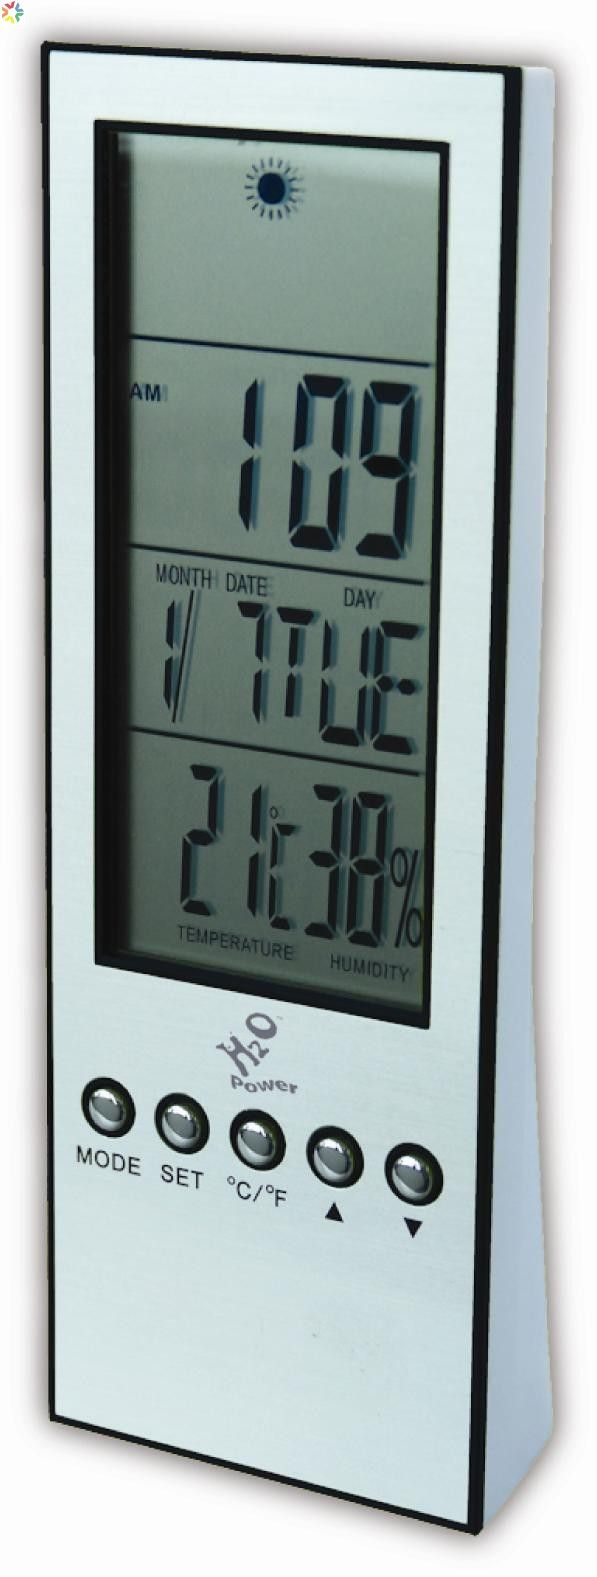 This Water Powered Weather Station provides everyone a precise weather forecast. Aside from providing weather information, it also measures room temperature, humidity and time.